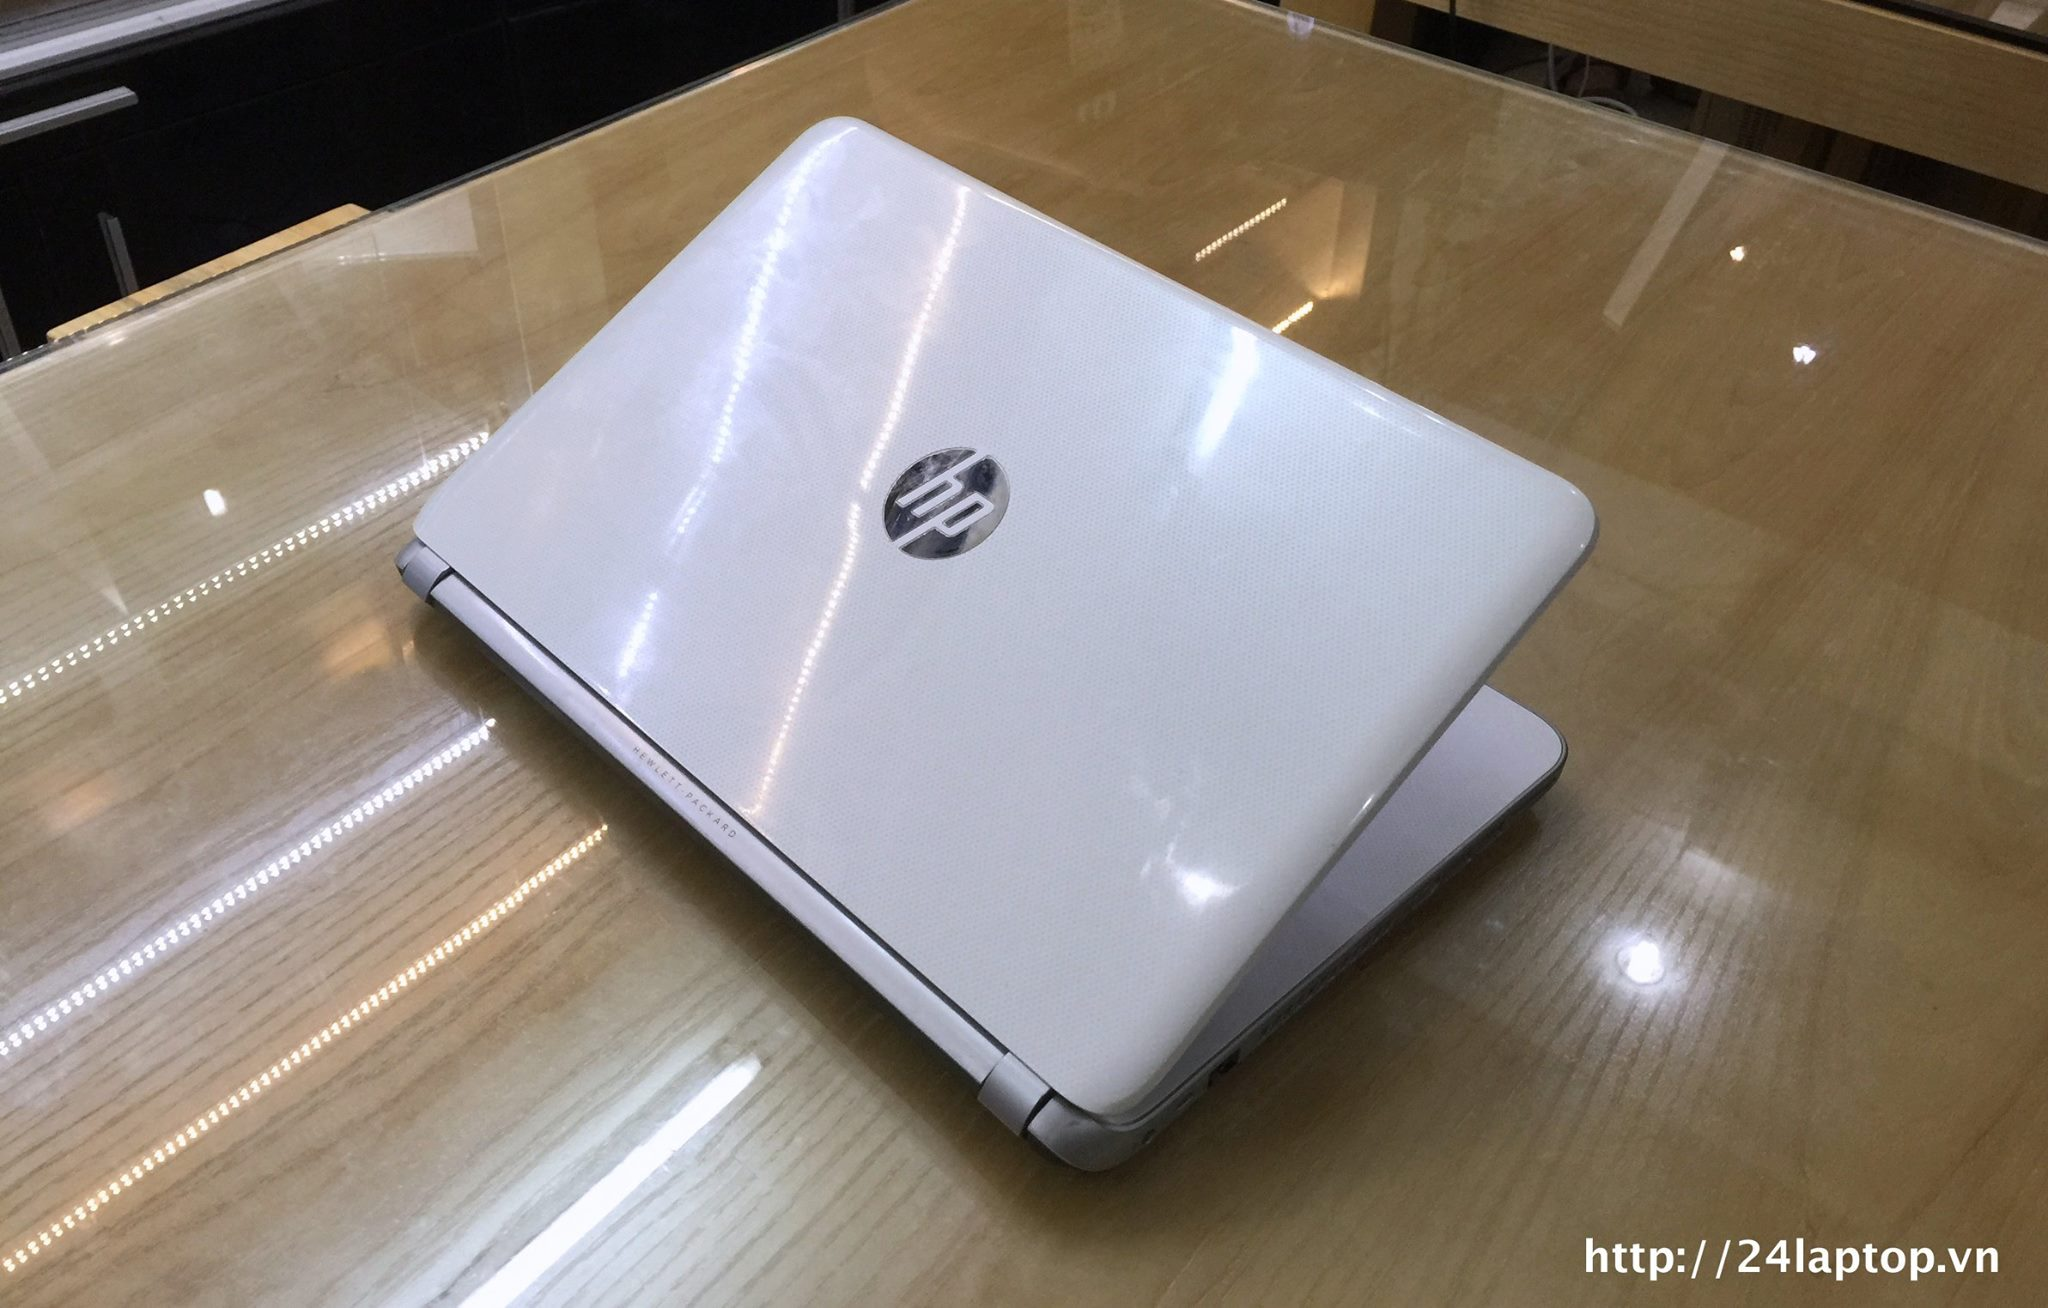 Laptop HP Pavilion 14 i5 VGA 2GB_2.jpg